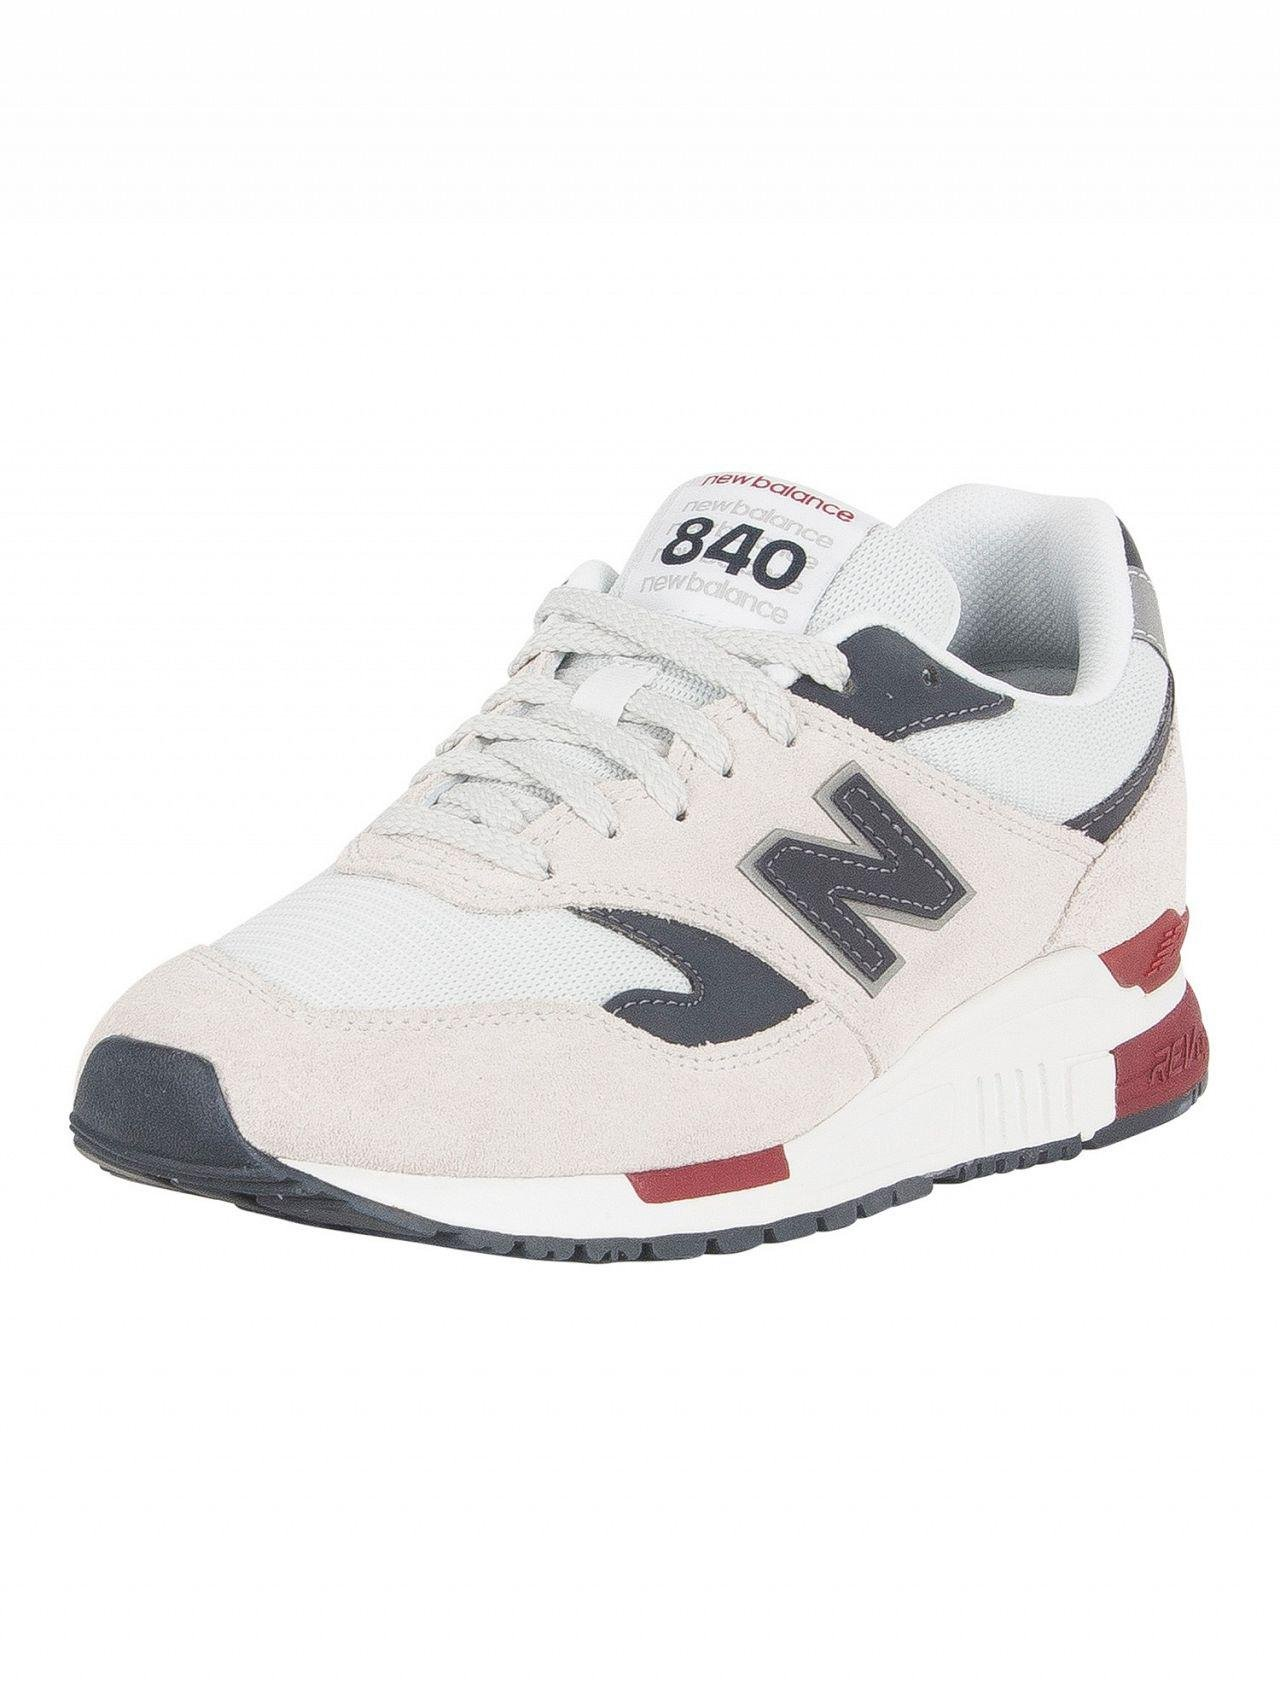 New Balance. Pigment/white 840 Suede Trainers